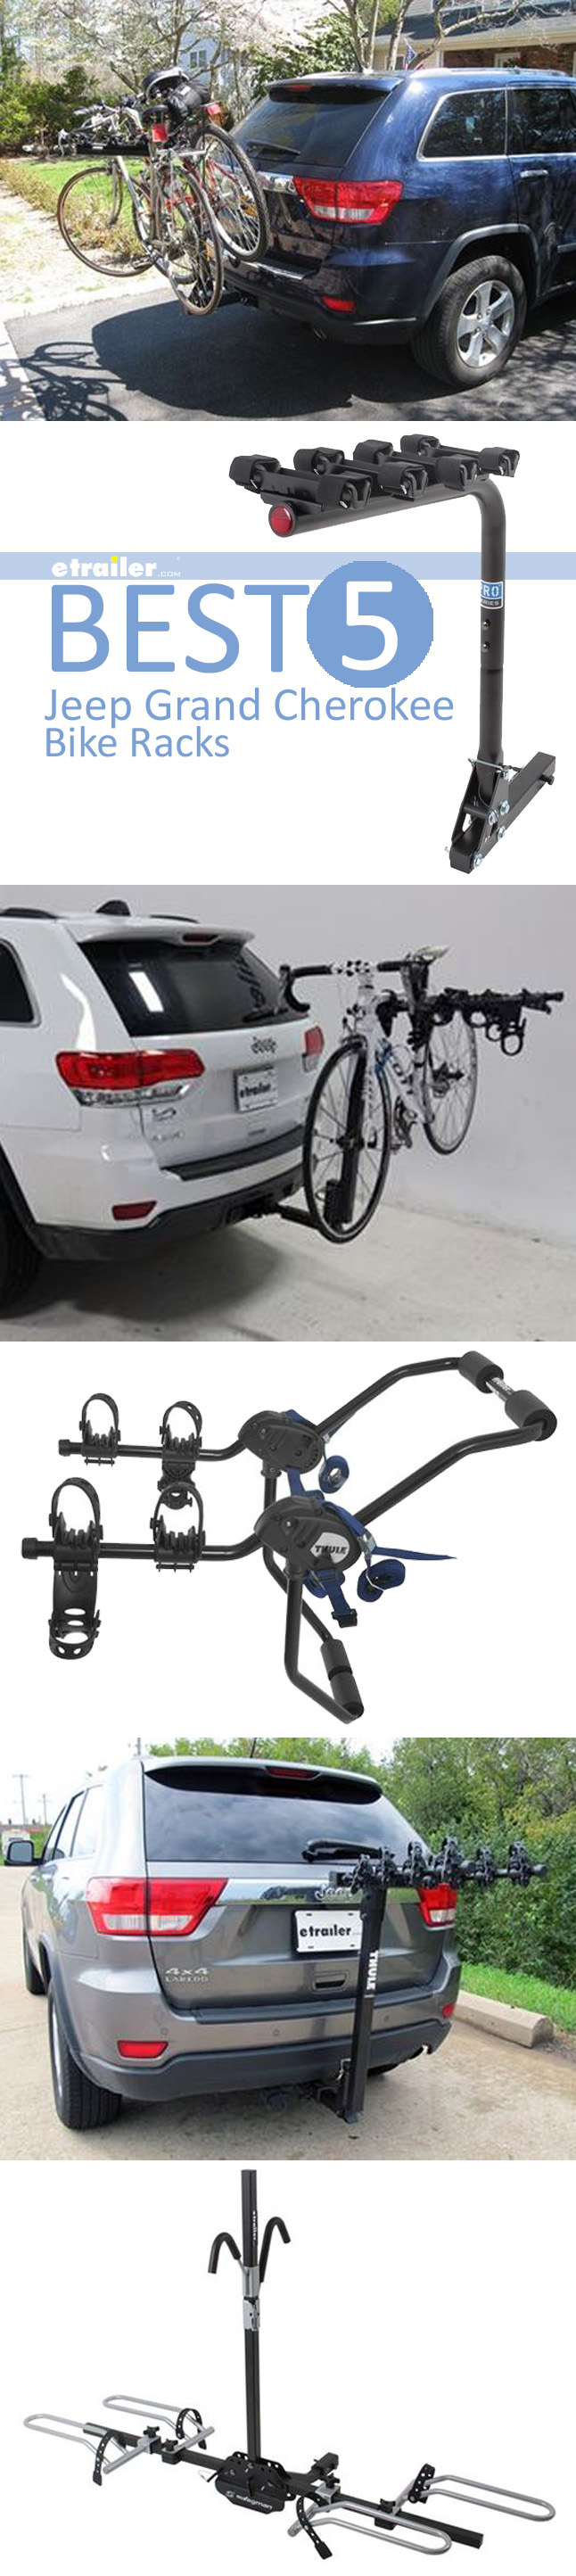 Best 5 Jeep Grand Cherokee Bike Racks Swinging Tilting Platform